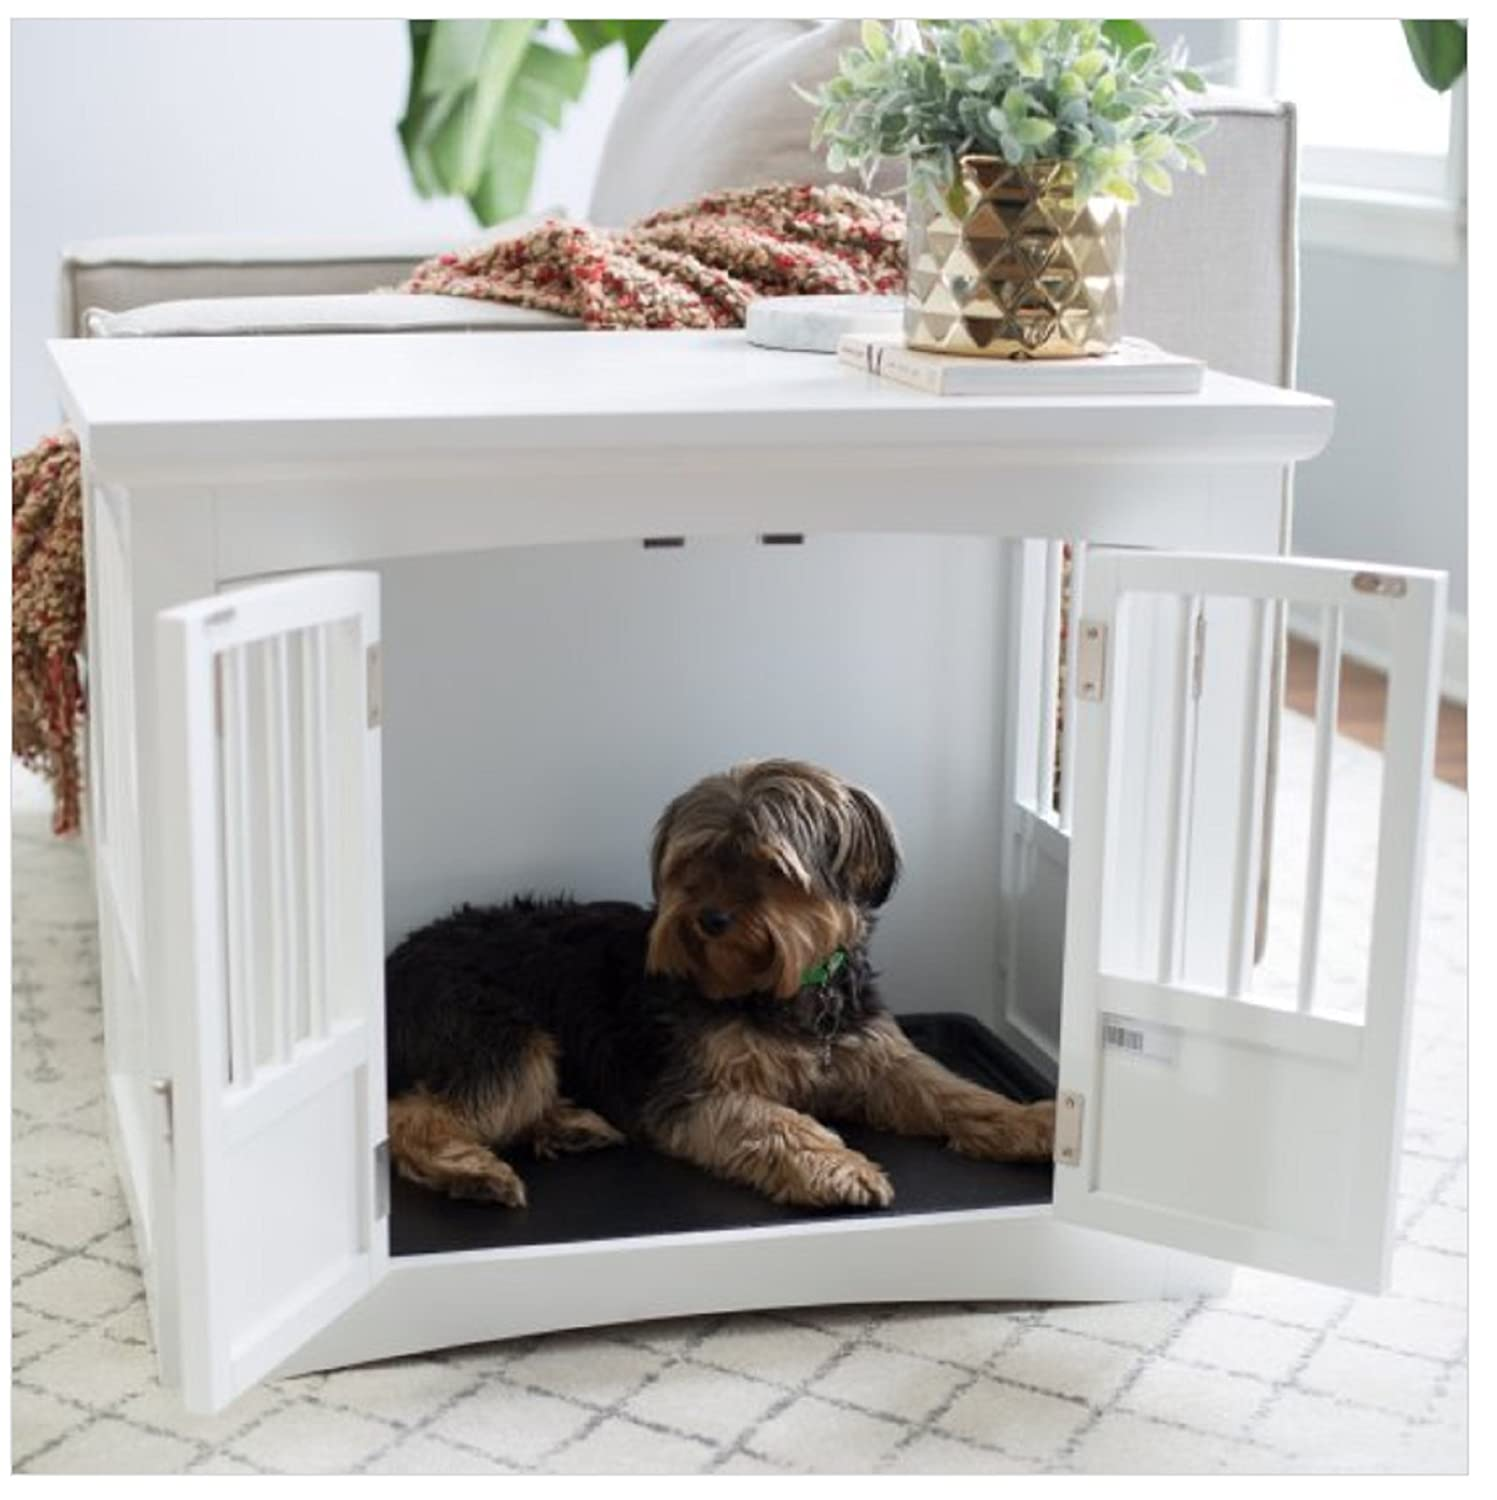 Indoor dog crate end table 2 door white wood bed kennel furniture bedroom puppy pet supplies